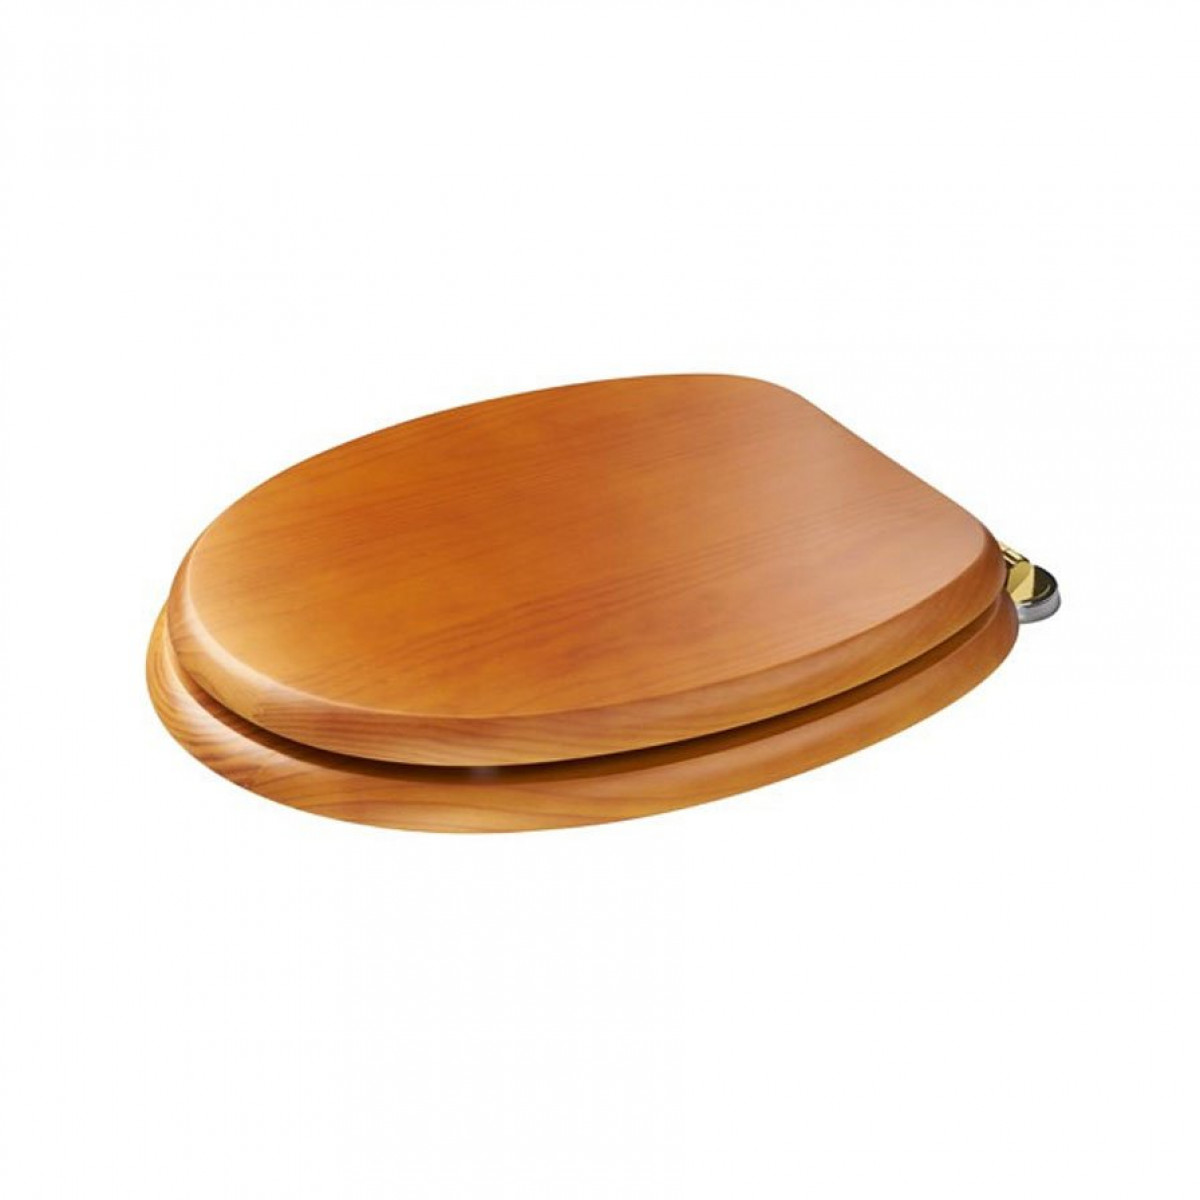 Croydex Douglas wooden toilet seat in pine with brass hinges